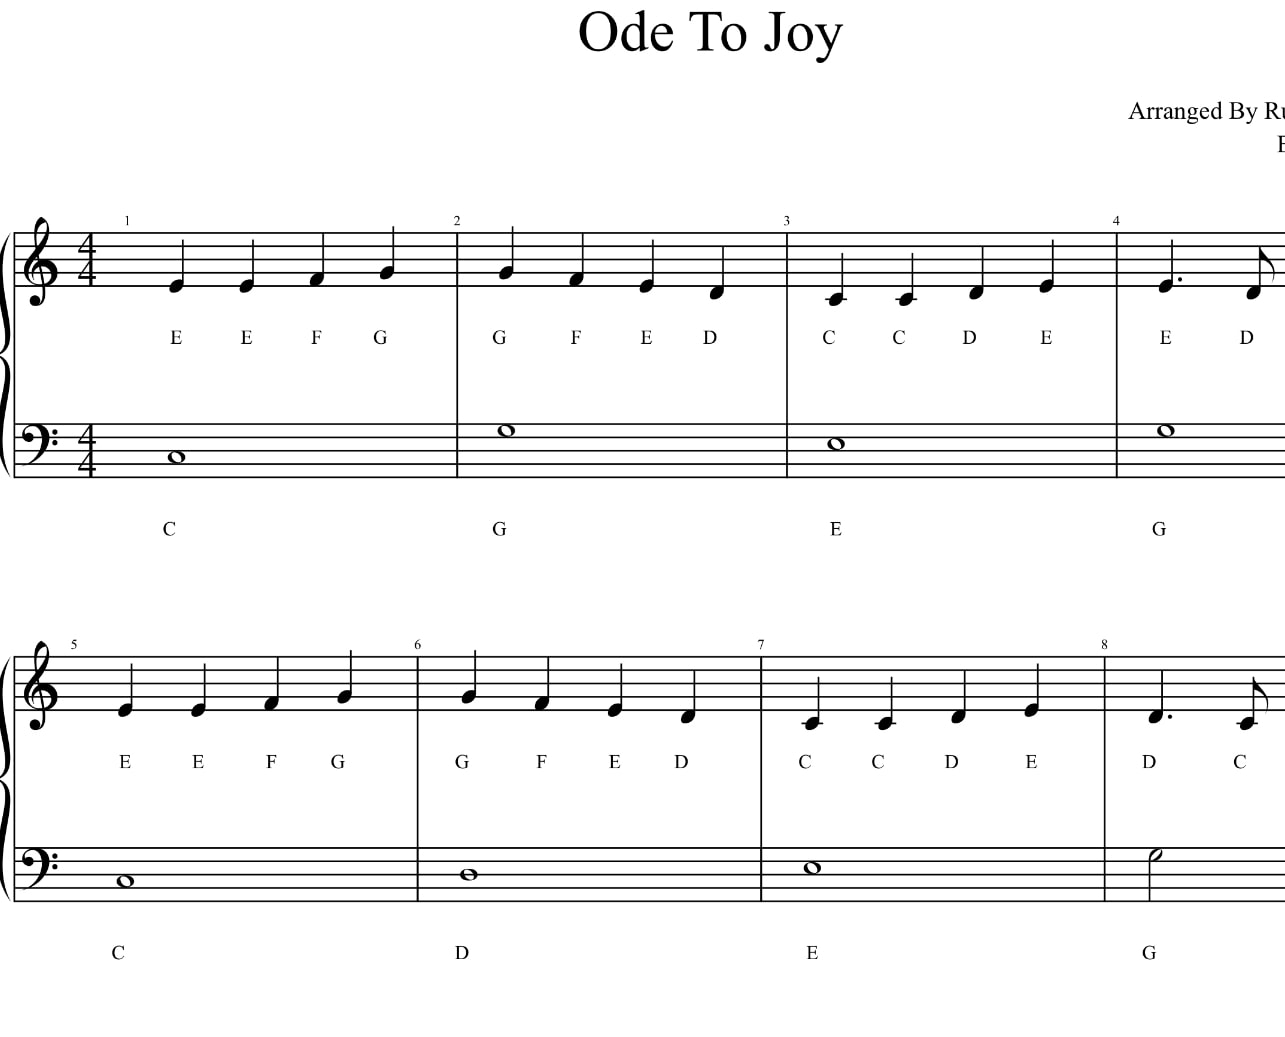 Ode To Joy Easy Piano Sheet Music With Letter Names